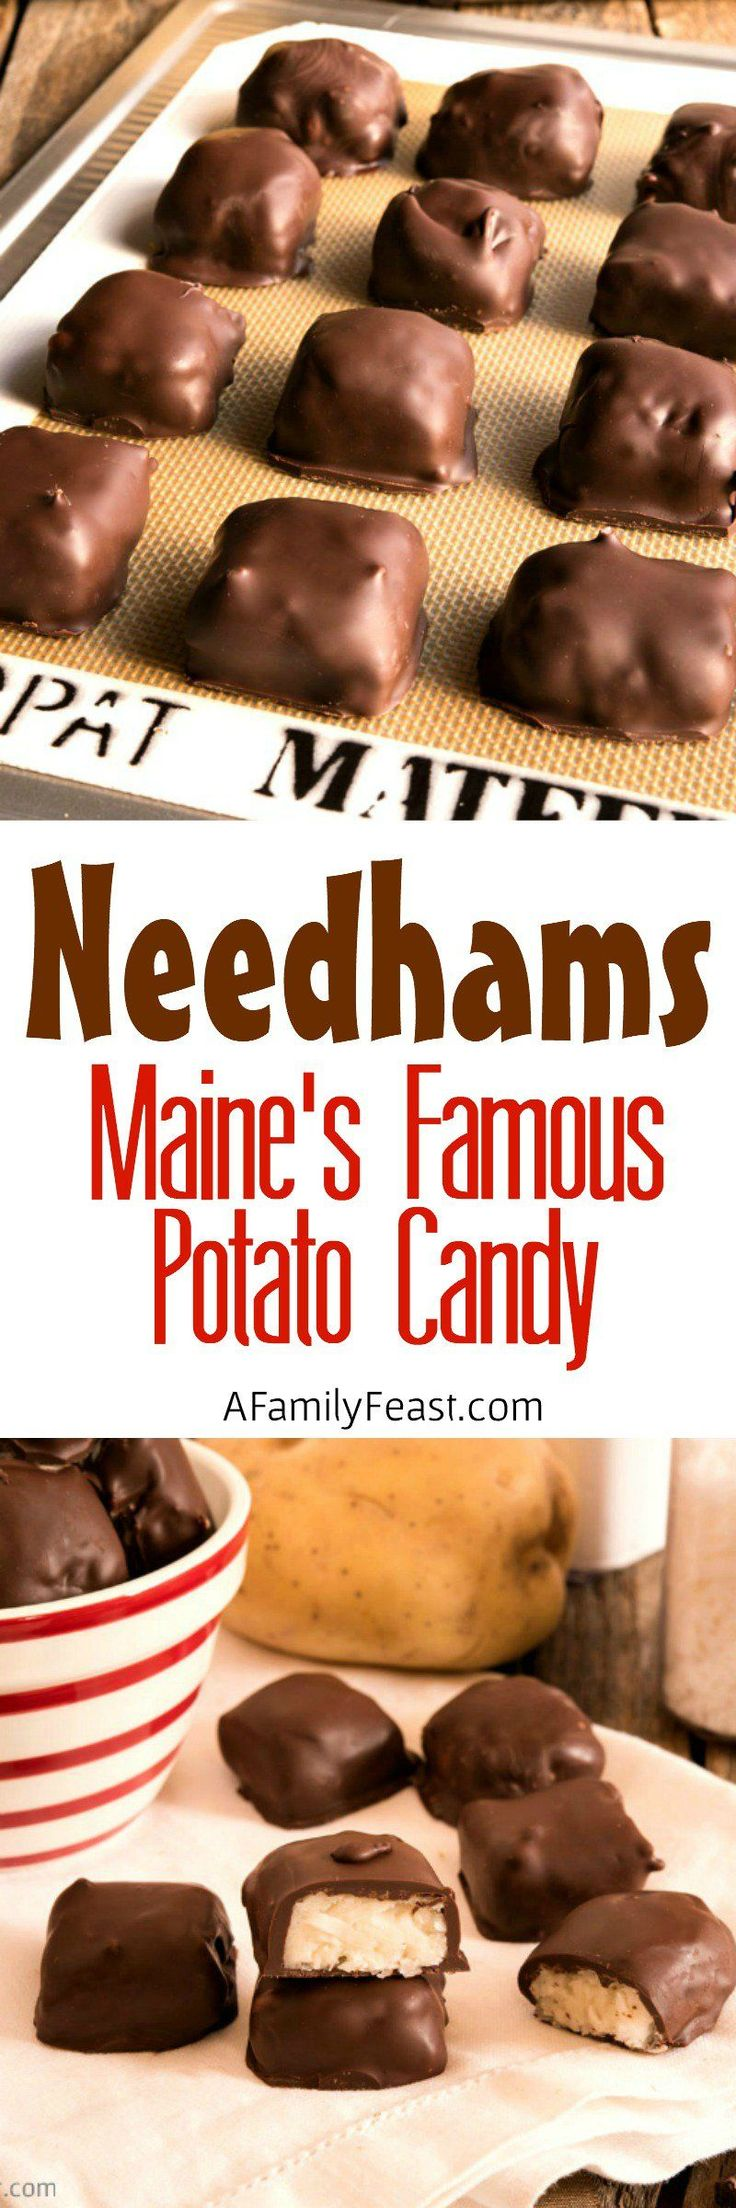 Needhams are Maine's Famous Potato Candy - Chocolate-dipped candy made with mashed potatoes, coconut and sugar. Read about this classic Maine recipe!